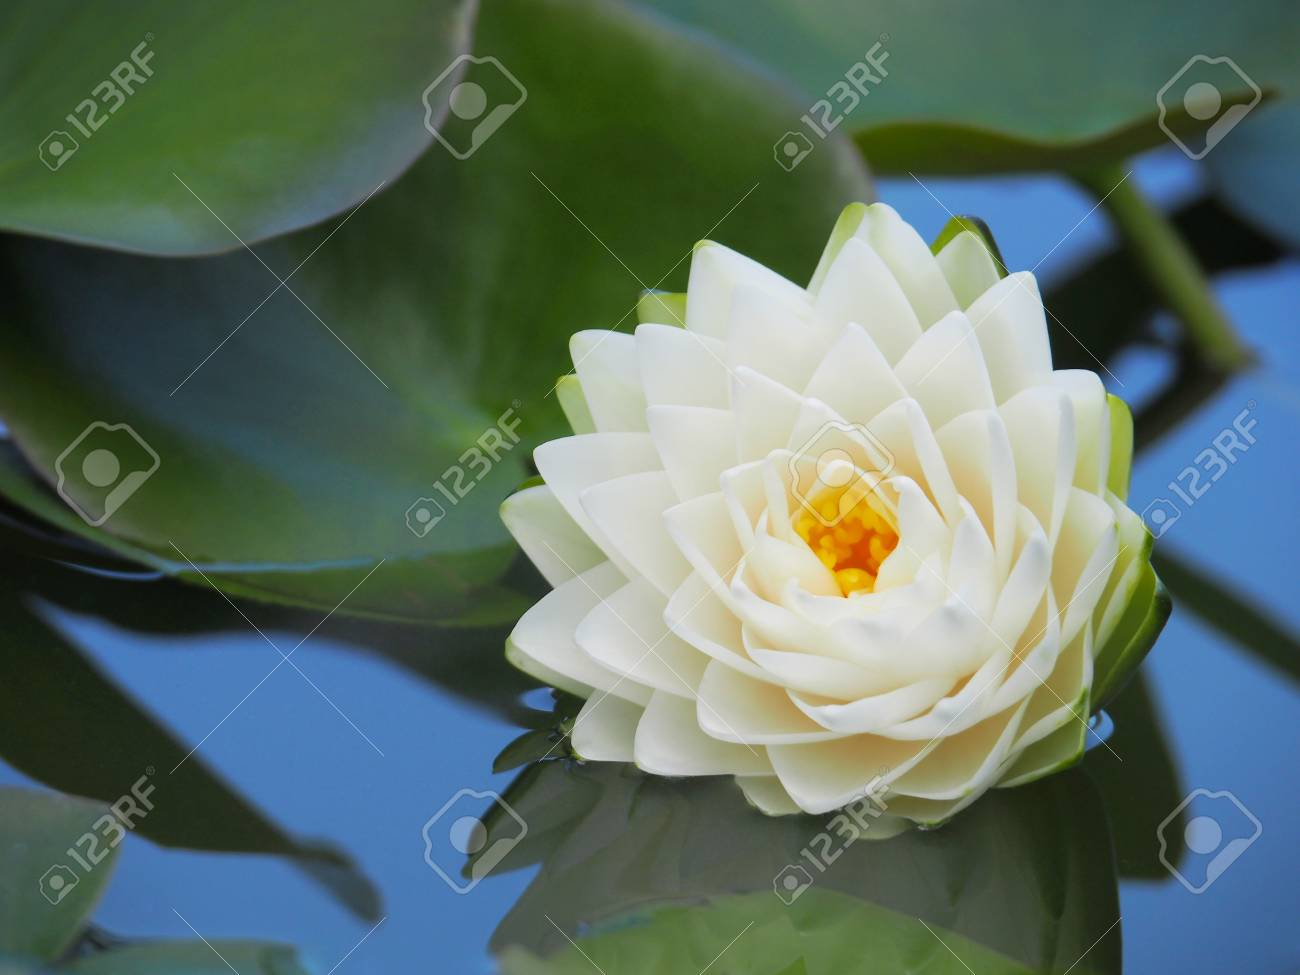 Lotus flower or water lily with green leaves beautifully blooming lotus flower or water lily with green leaves beautifully blooming in the spa pool to decorate izmirmasajfo